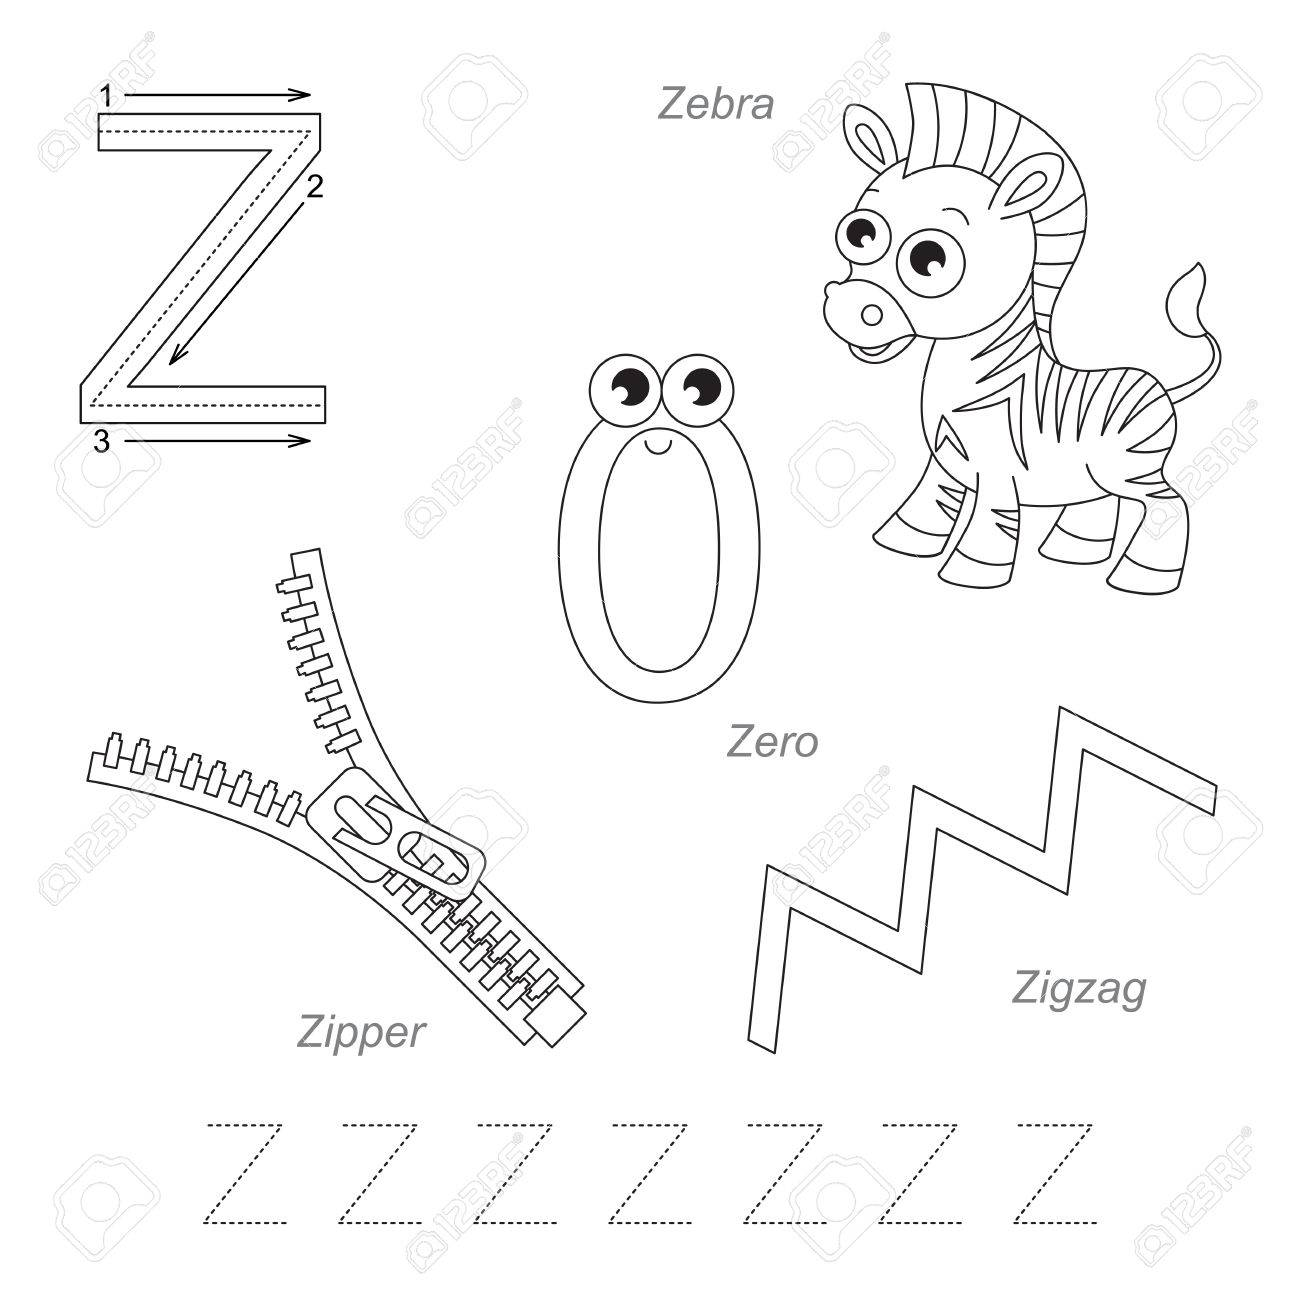 worksheet Letter Z Worksheet tracing worksheet for children full english alphabet from a to z pictures letter